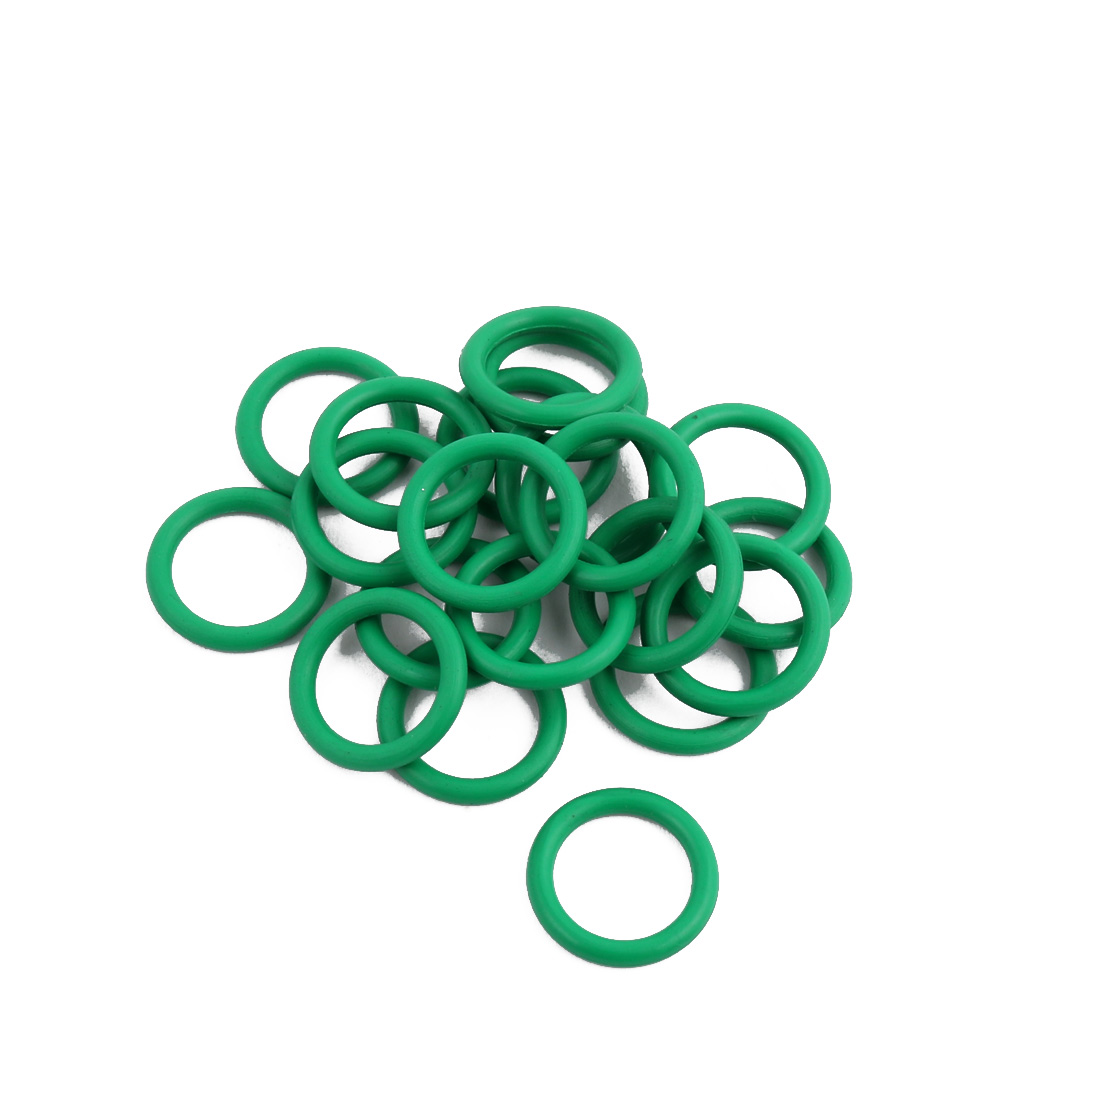 20Pcs Green 14 x 2mm Industrial Flexible Rubber O Ring Oil Sealing Grommets